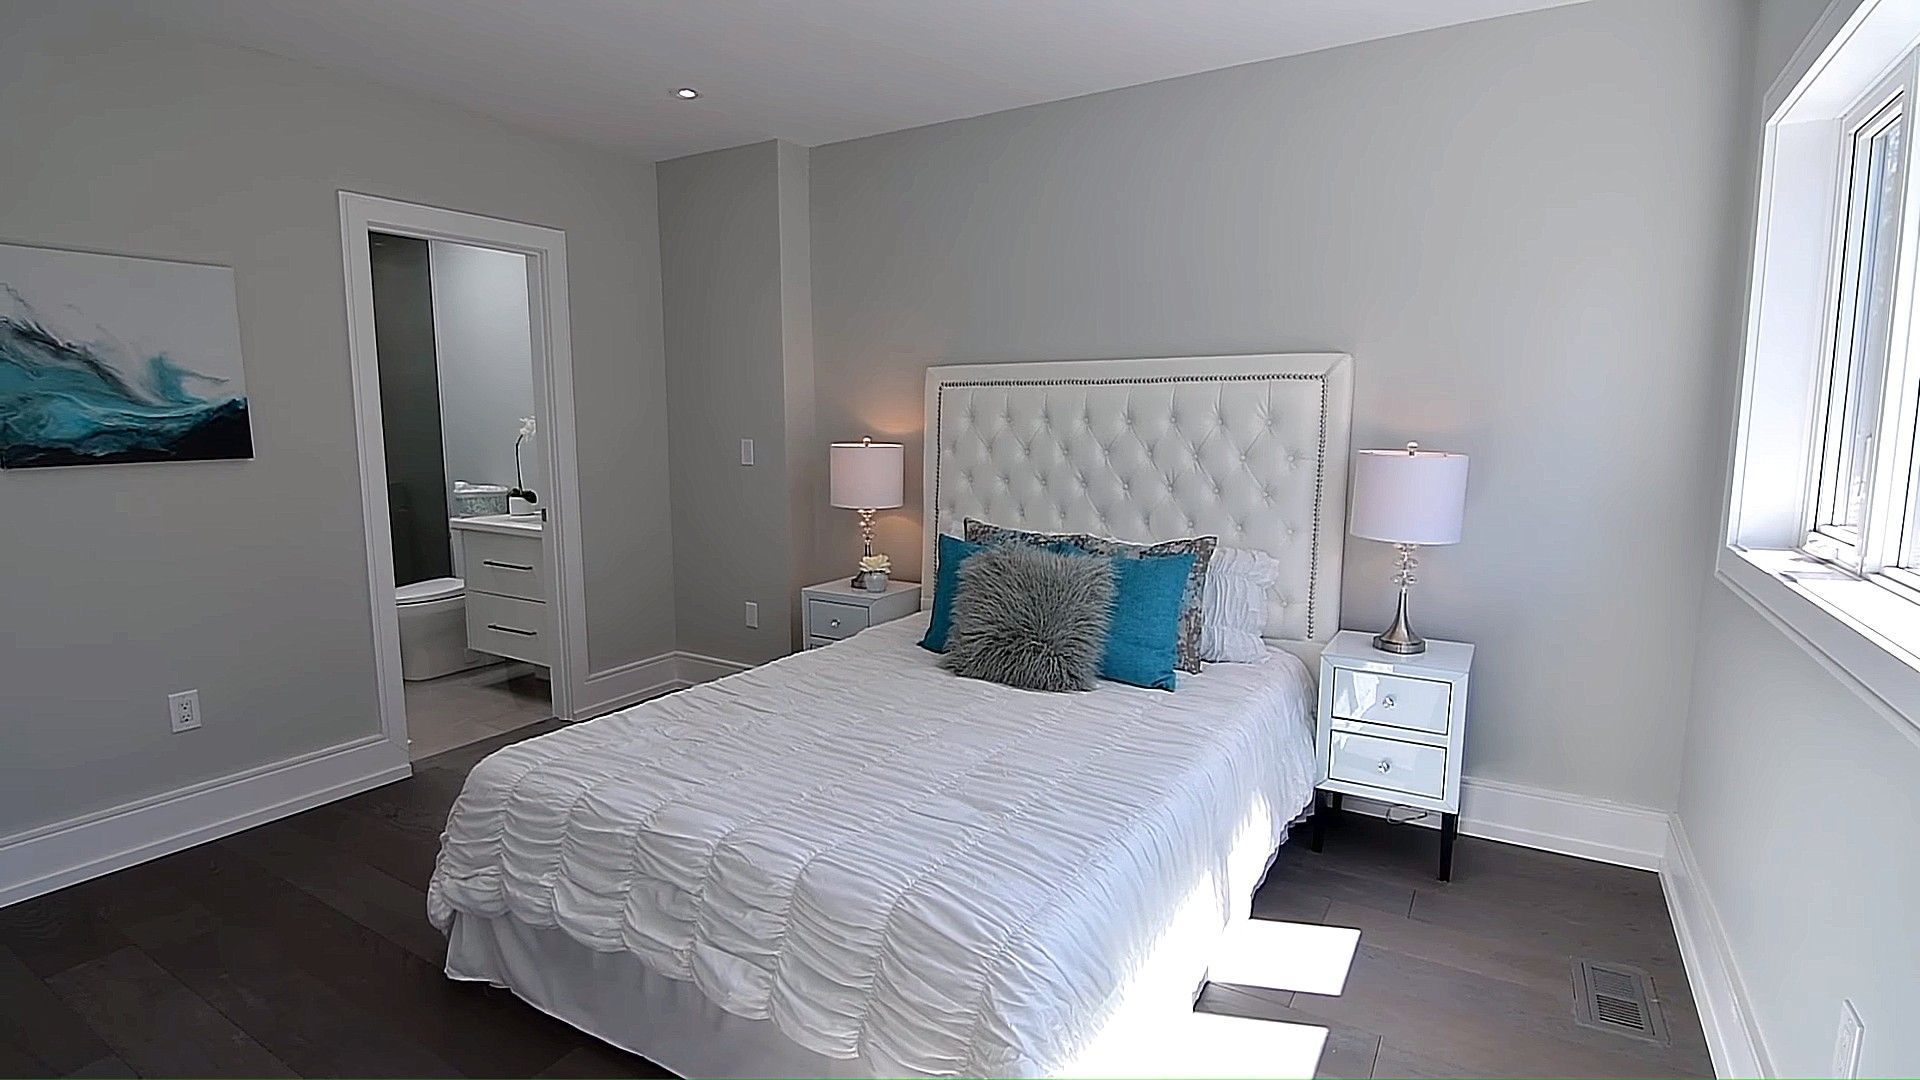 Wavy White Bedcover Idea (With images) House interior